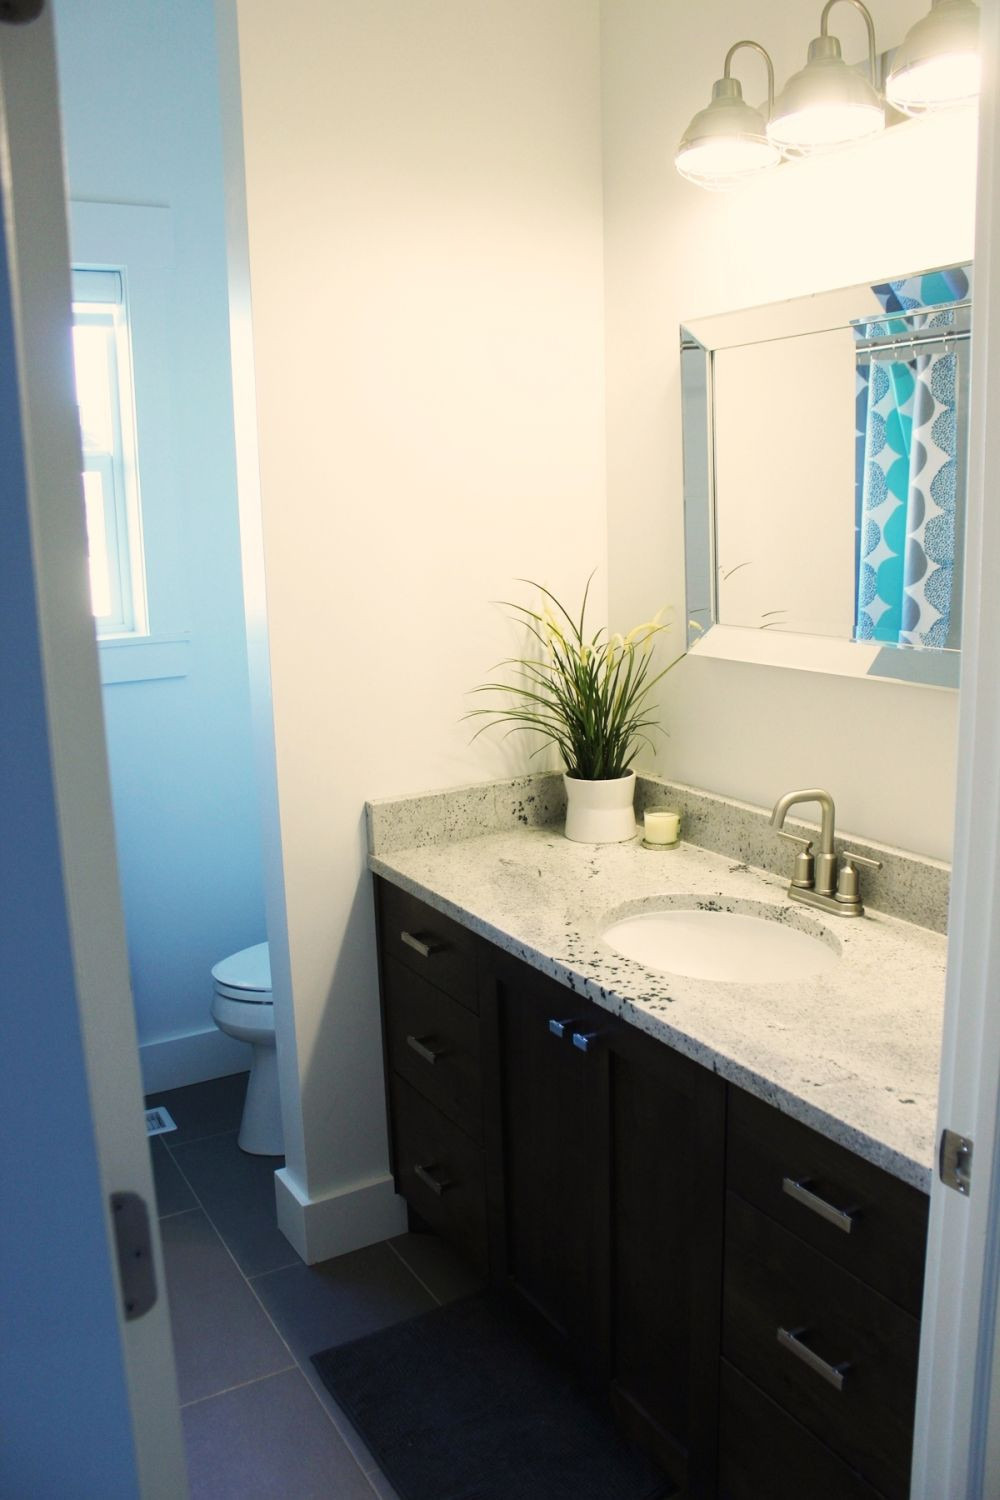 Pics Of Decorated Bathrooms Luxury the Best How to Decorate A Small Bathroom Best Interior